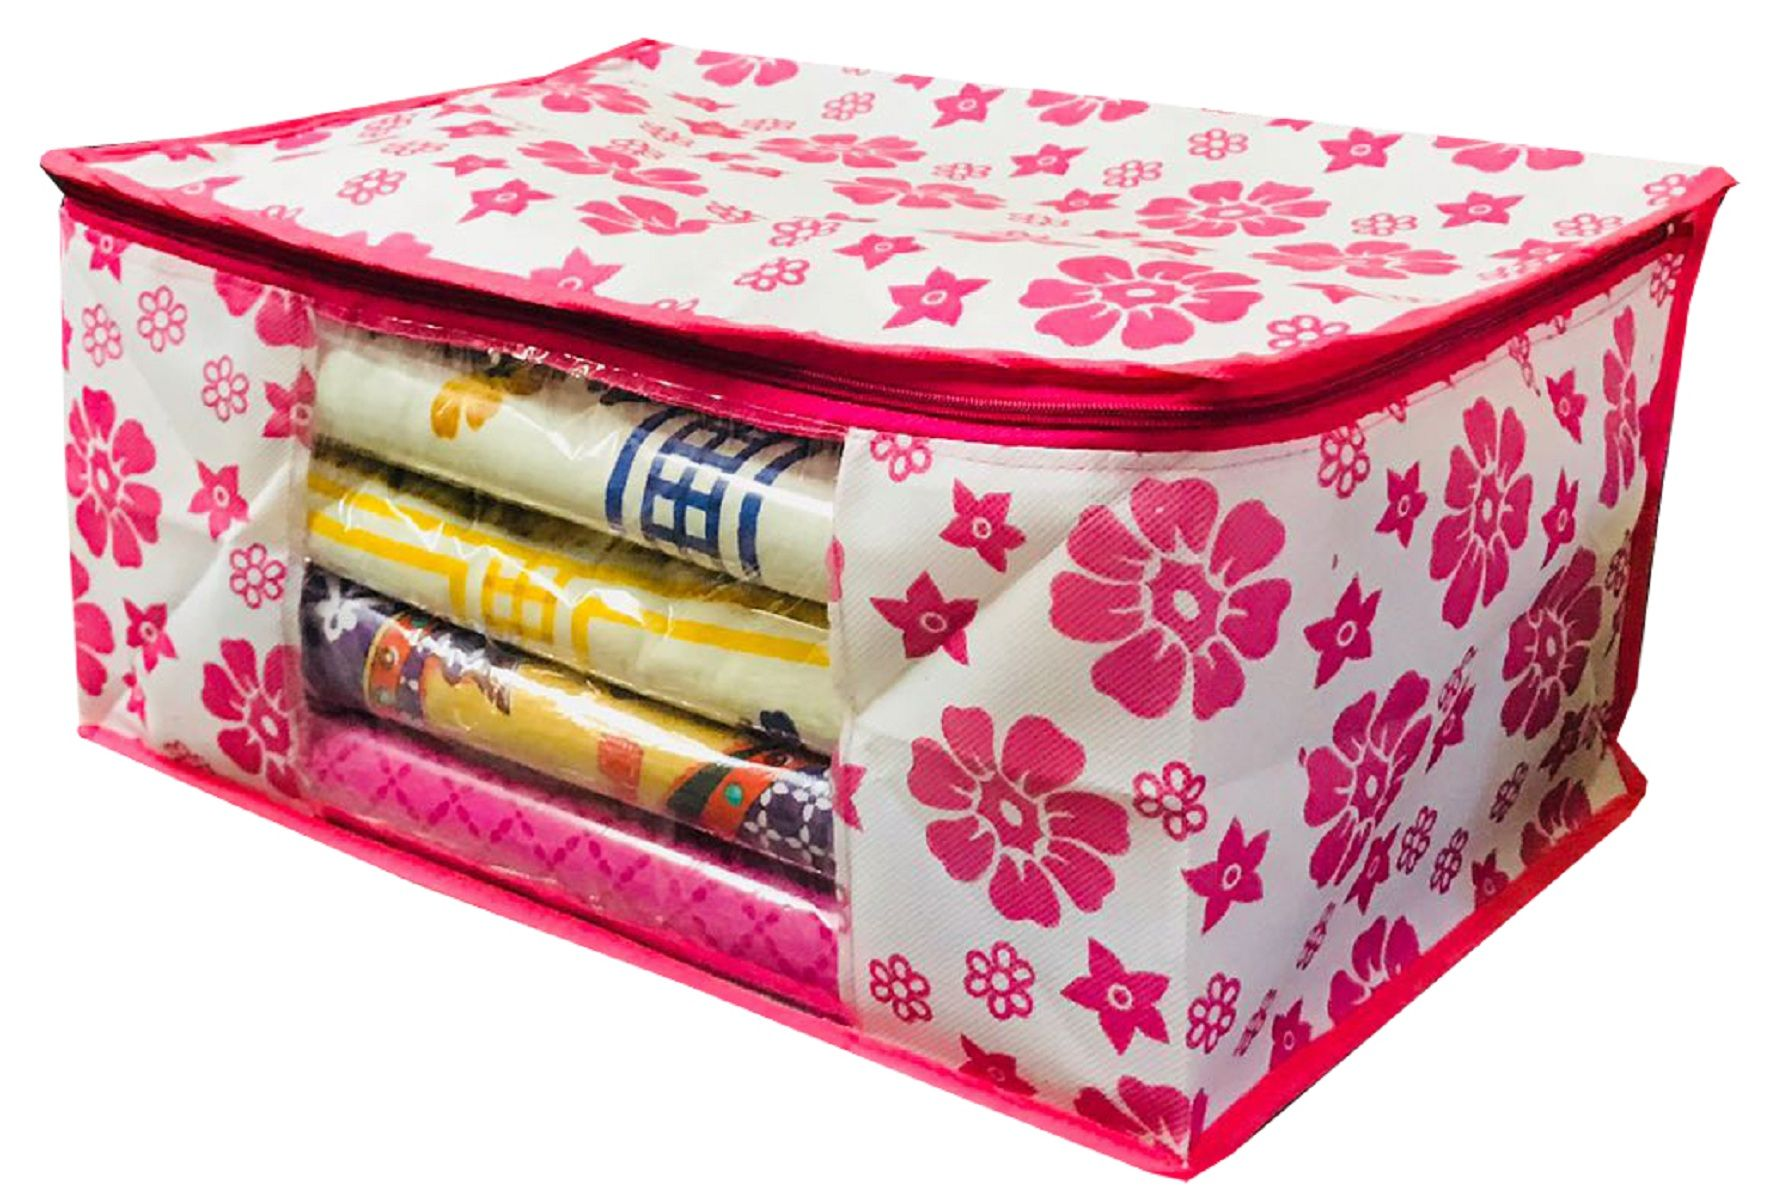 Kuber Industries™ Extra Large Size Non Woven Saree Cover Pink Floral Design Set of 3 Pcs (90 GSM Fabric) -NS17